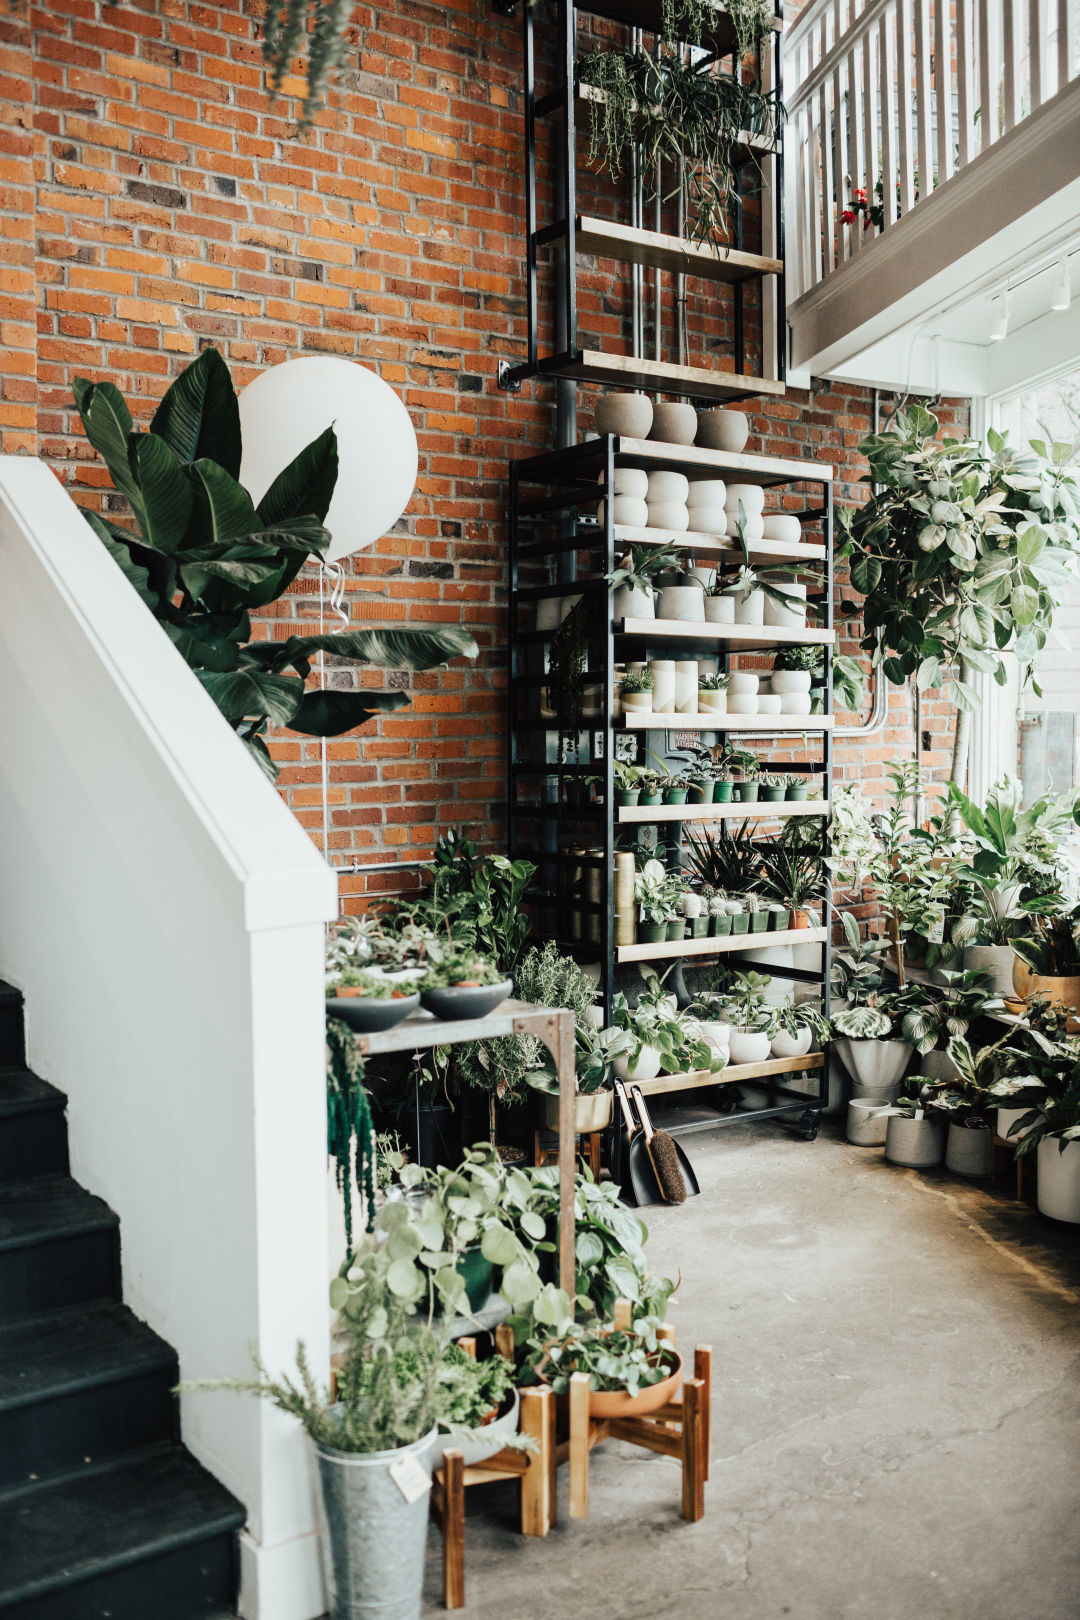 9 Seattle Plant Shops to Create an Indoor Jungle | Seattle Met on monstera philo cheesecake, monstera pertusum, monstera leaves, monstera direct sun, monstera sunny window, monstera thai constellation, monstera leaf browning,